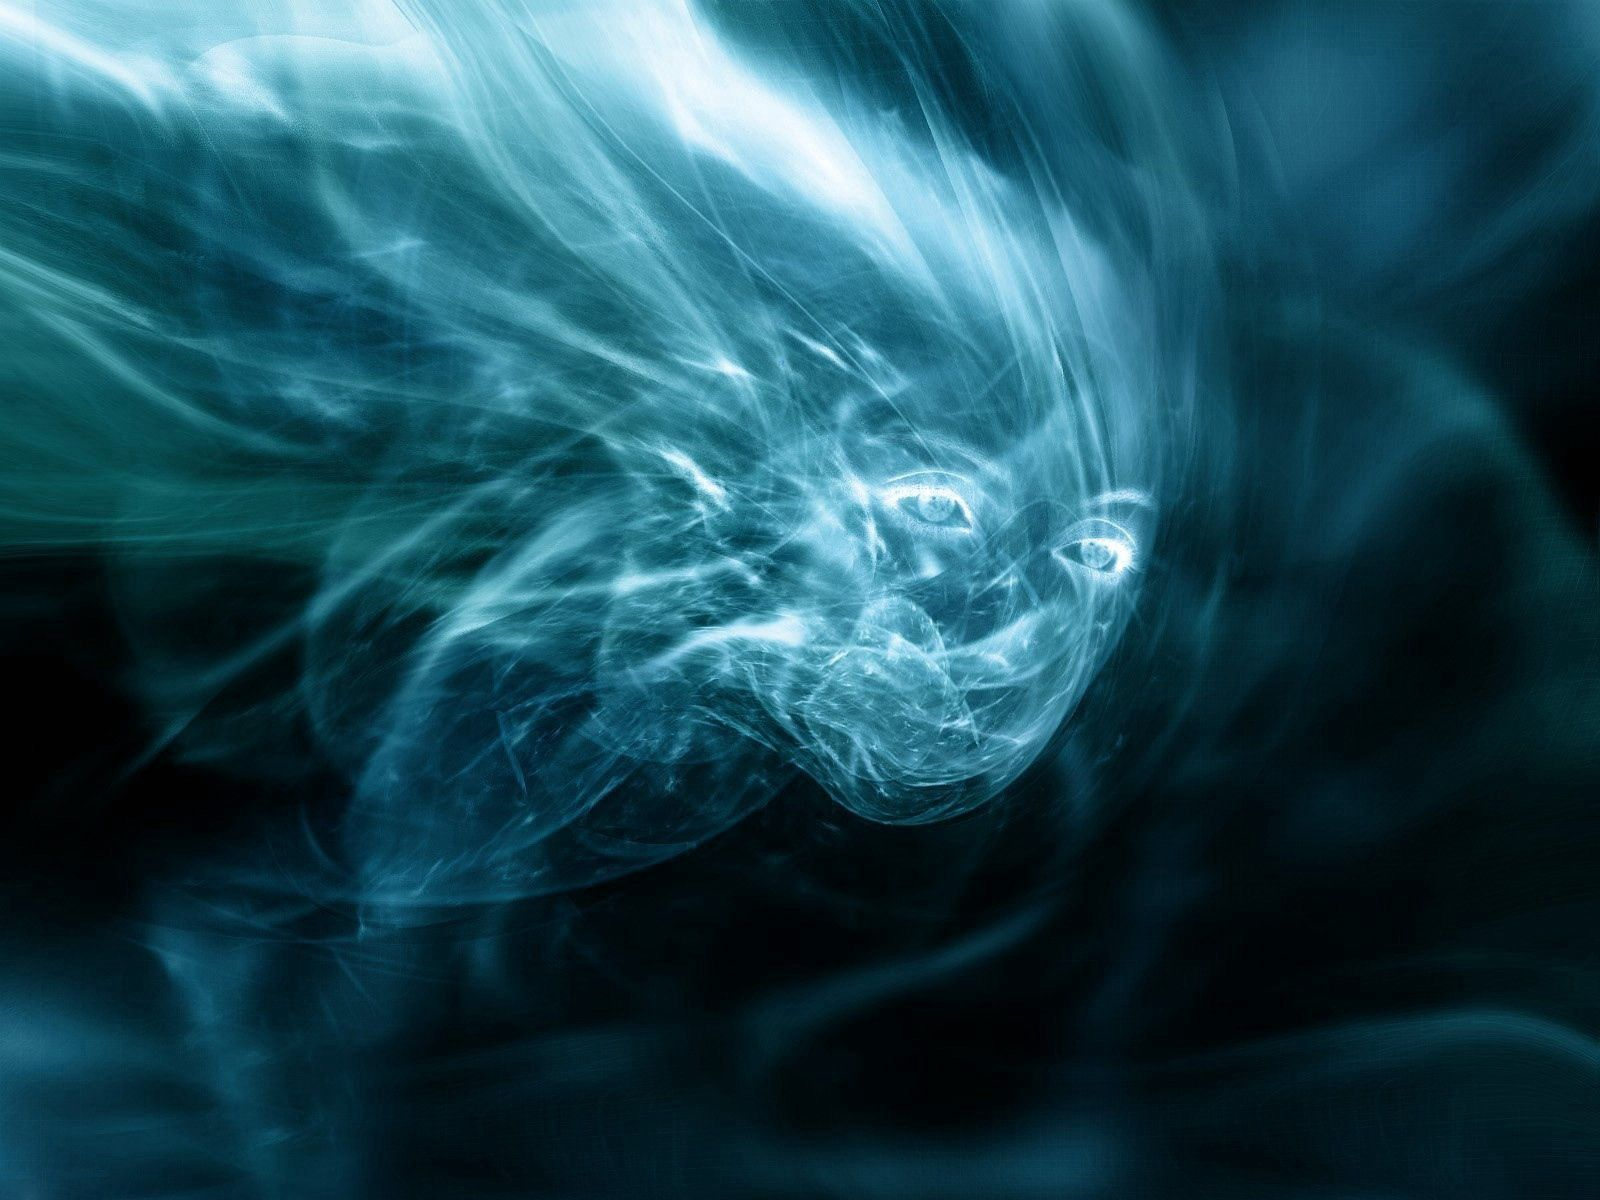 78832 download wallpaper Abstract, Face, Fear, Form, Image, Imagination, Smoke screensavers and pictures for free